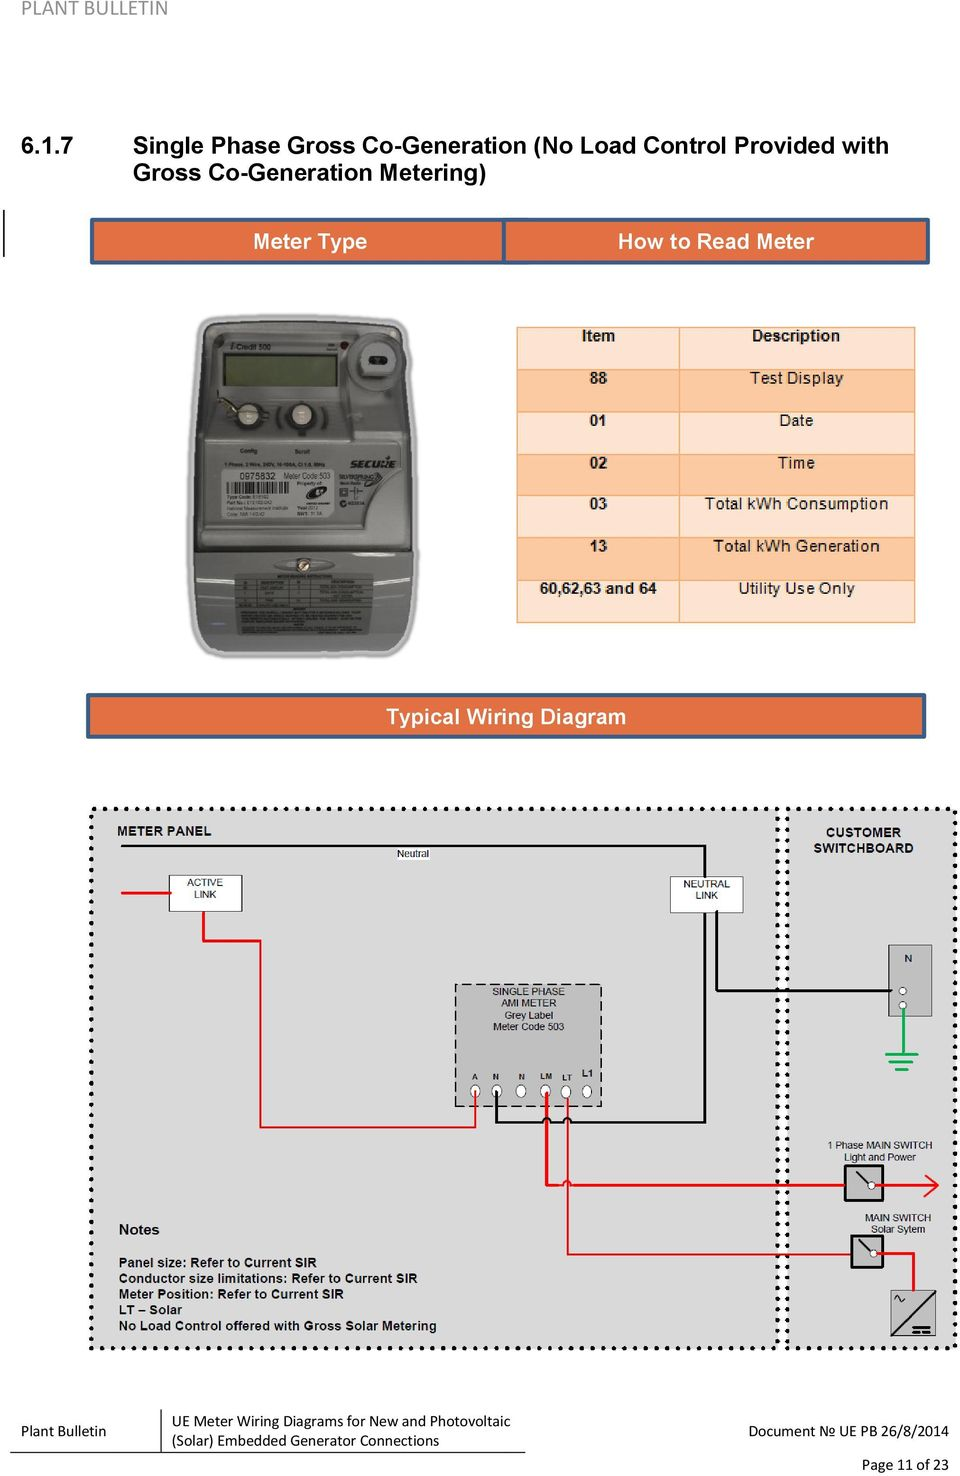 Generous Main Switchboard Wiring Diagram Contemporary - Wiring ...